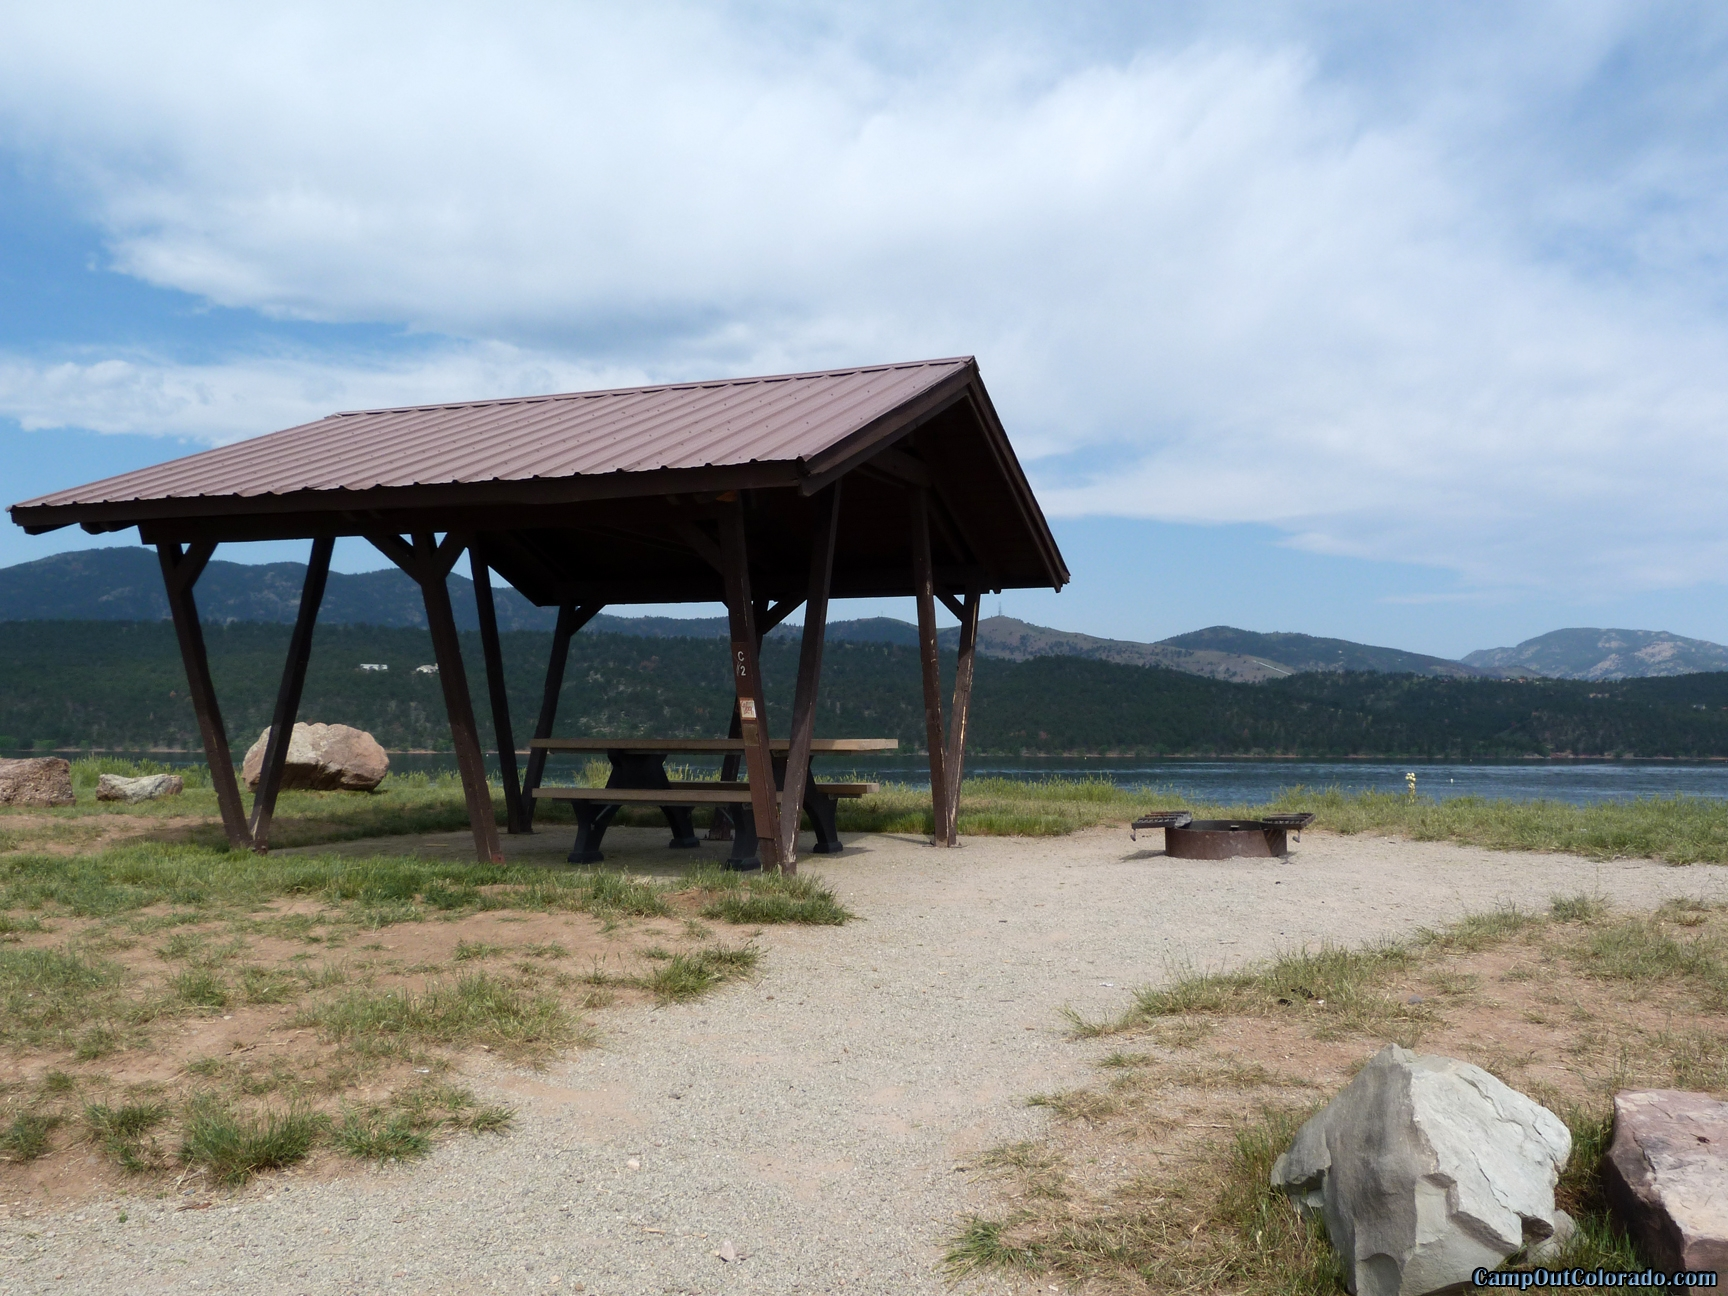 camp-out-colorado-carter-lake-coverd-table